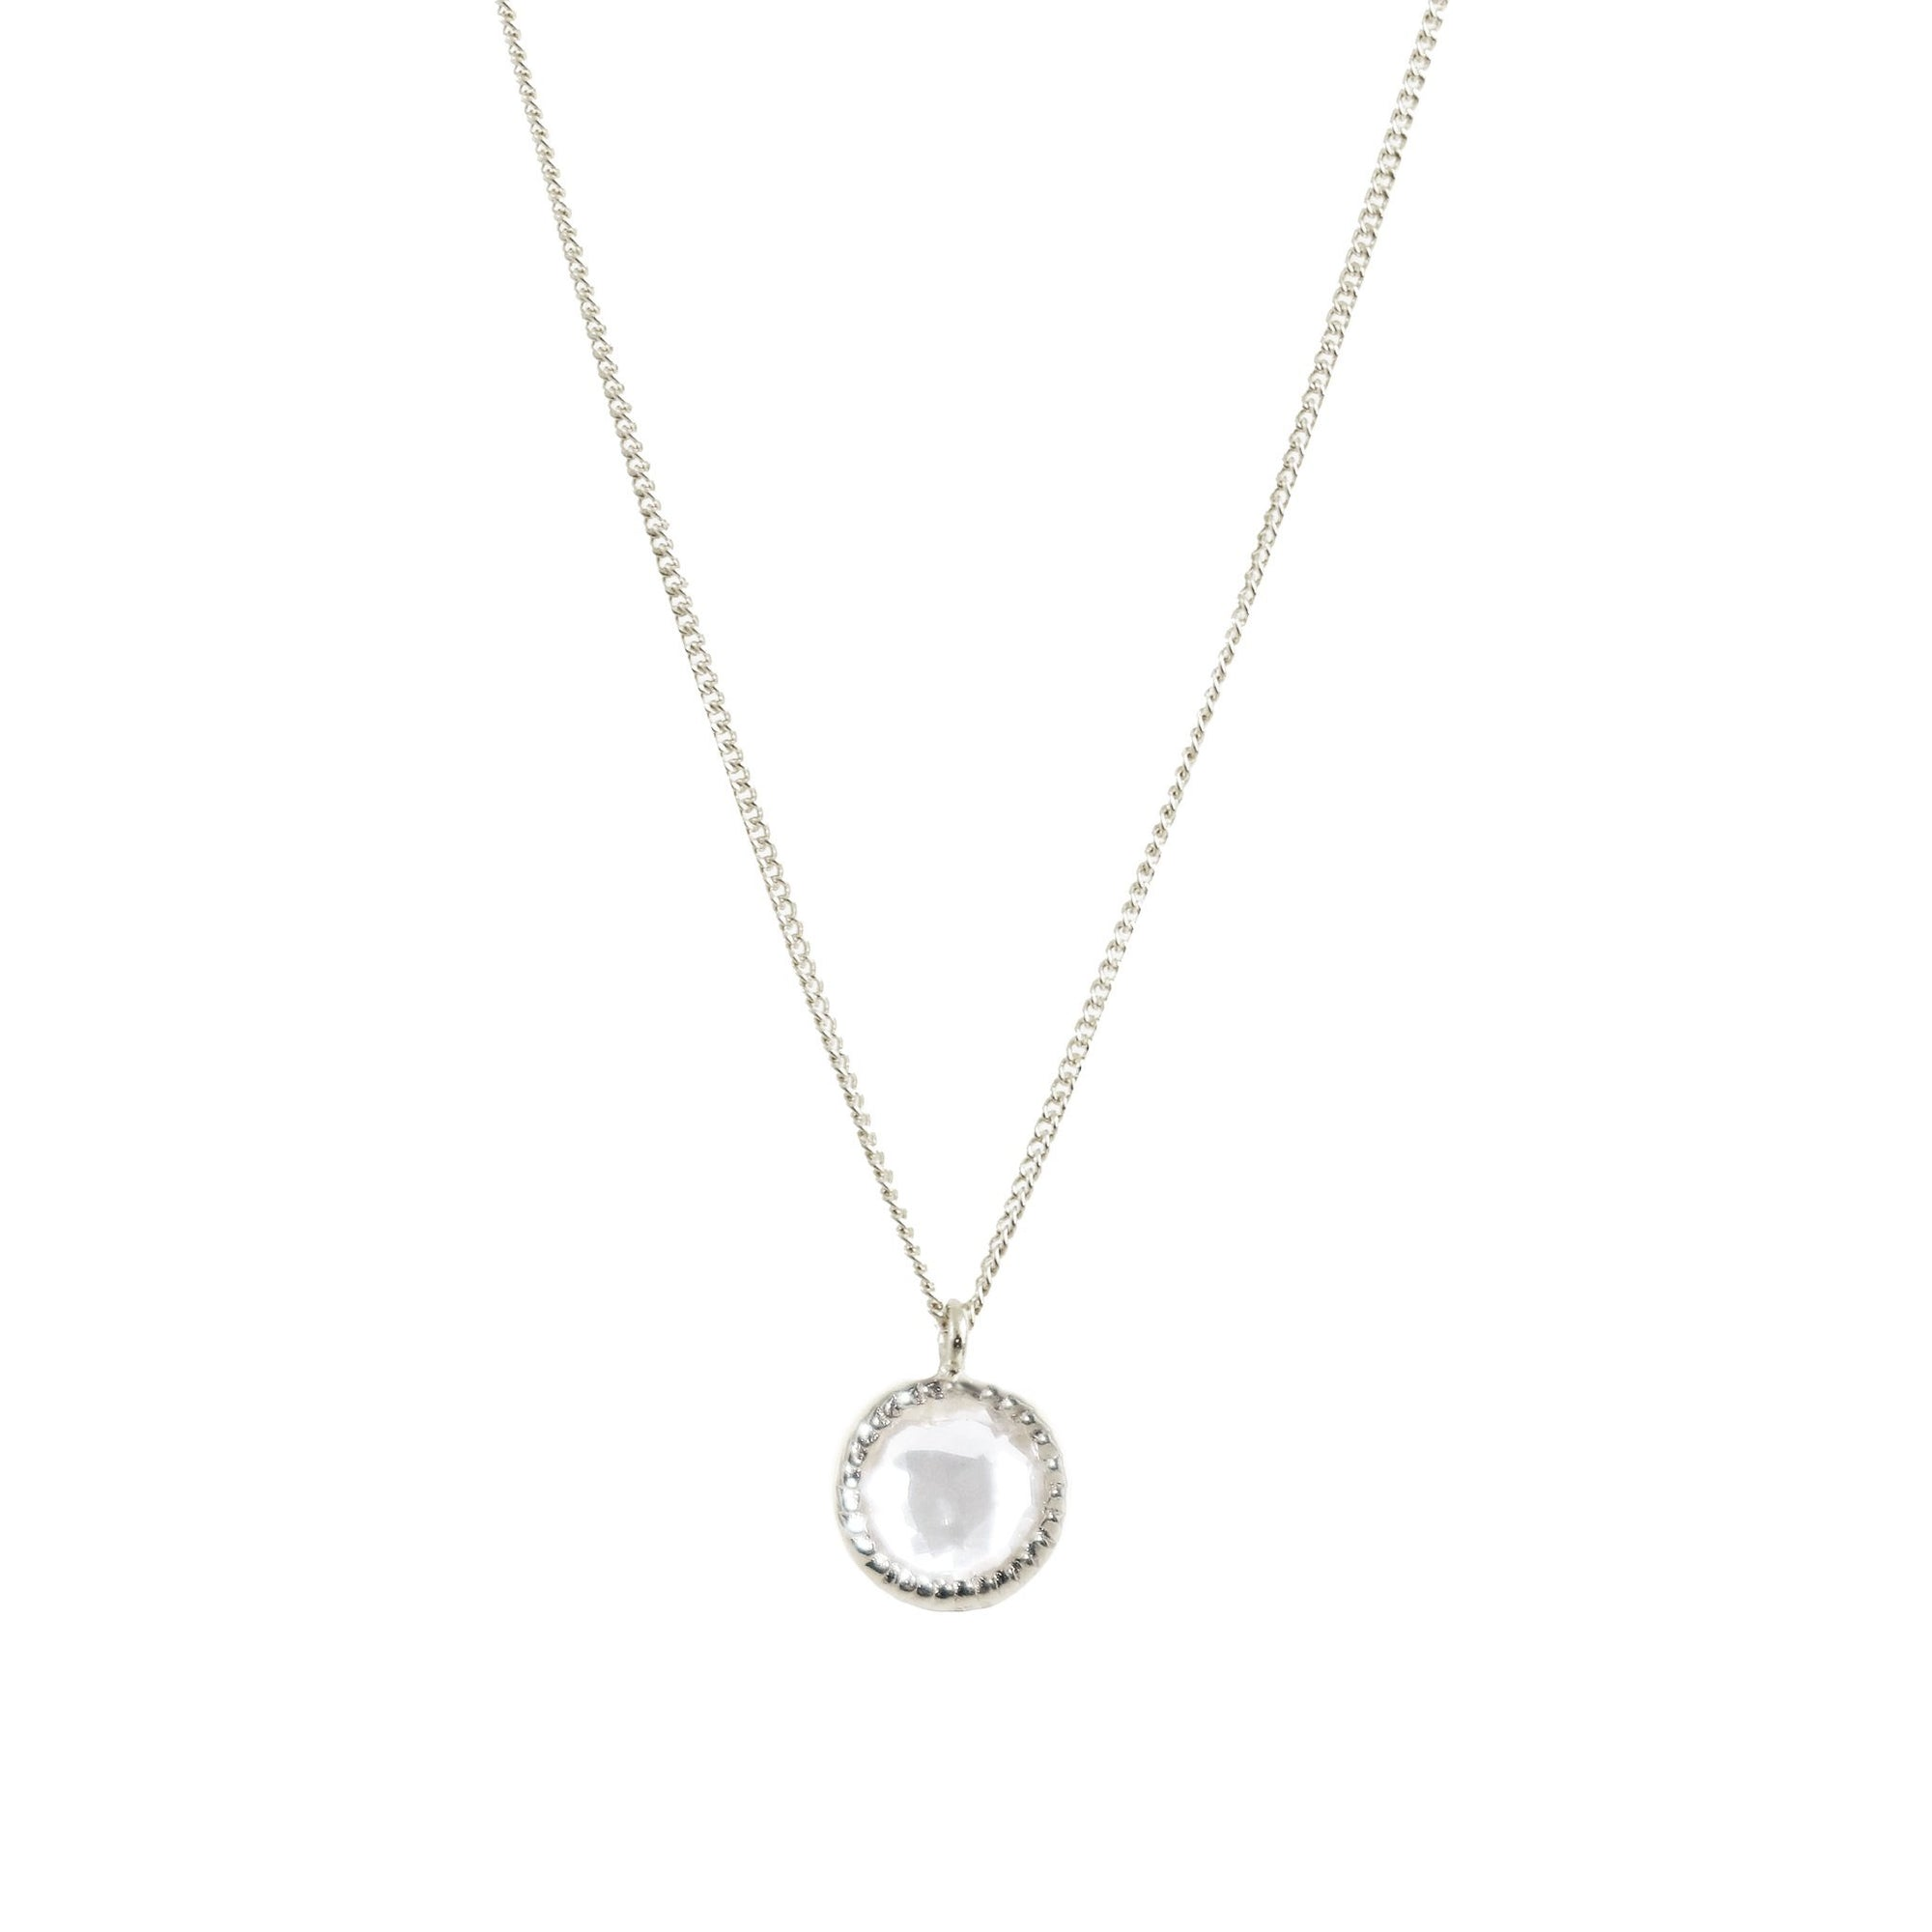 DAINTY LEGACY NECKLACE - WHITE TOPAZ & SILVER - SO PRETTY CARA COTTER